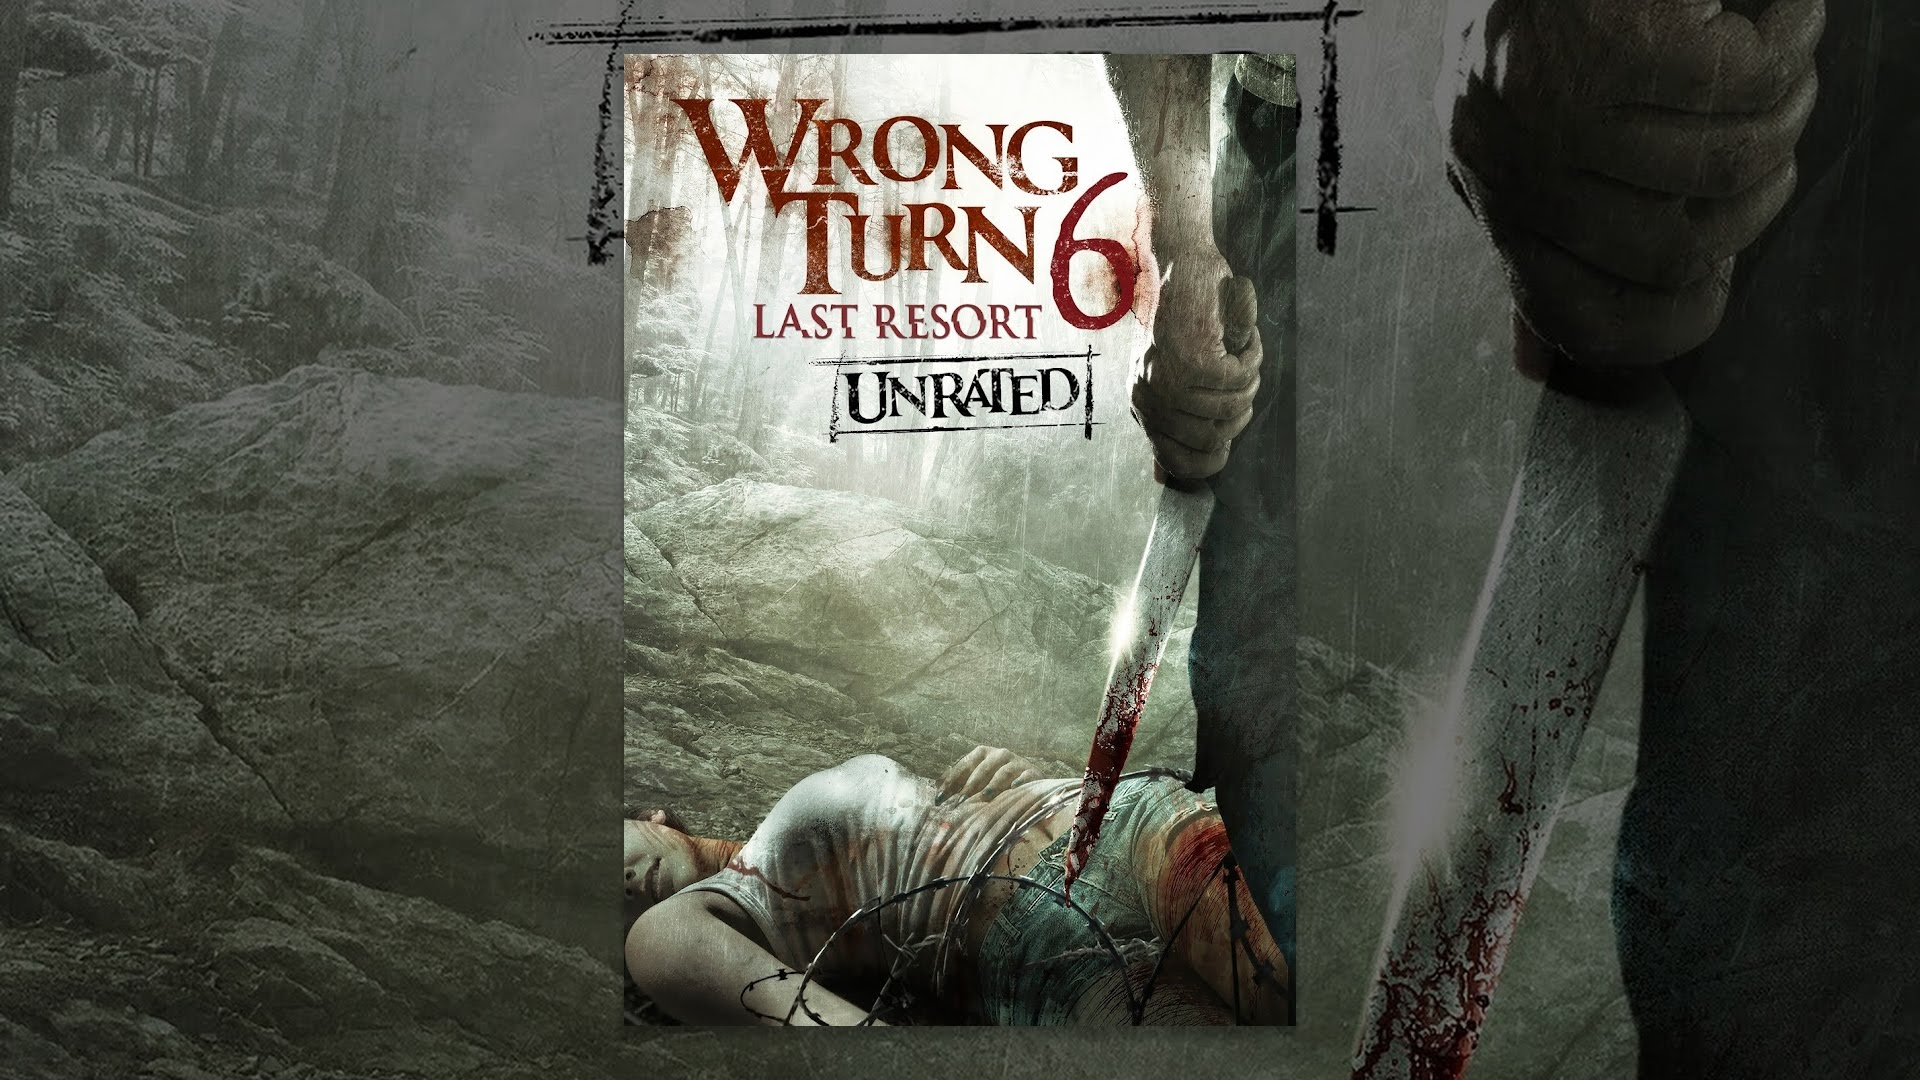 Wrong Turn 6: Last Resort Unrated - YouTube